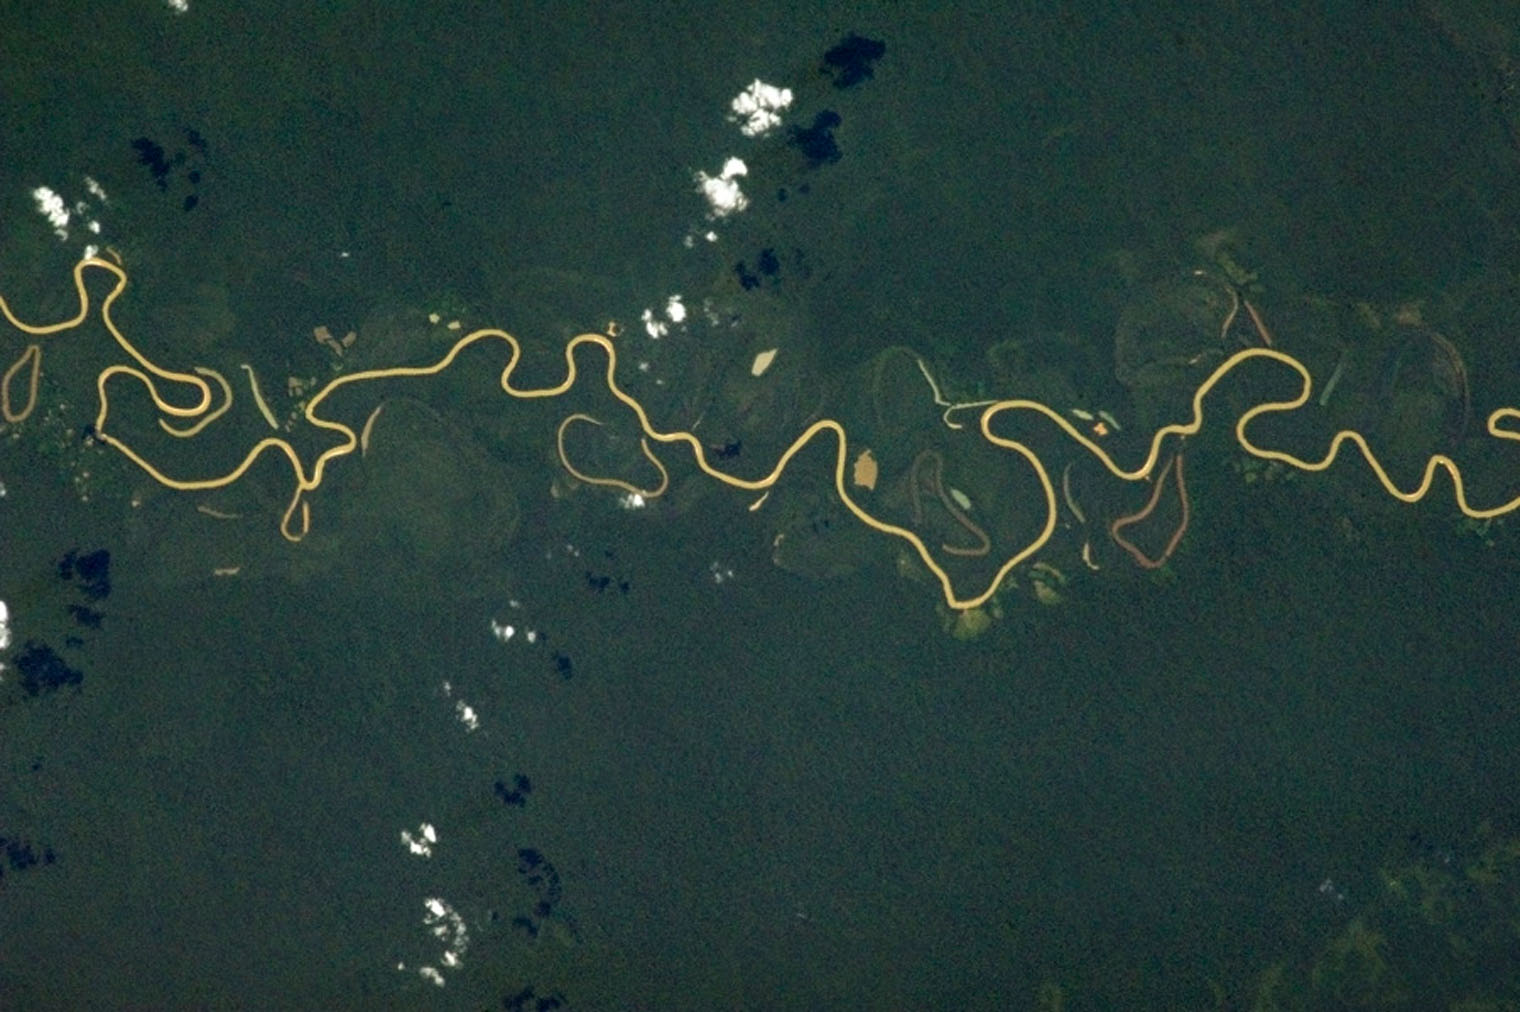 Squiggly river